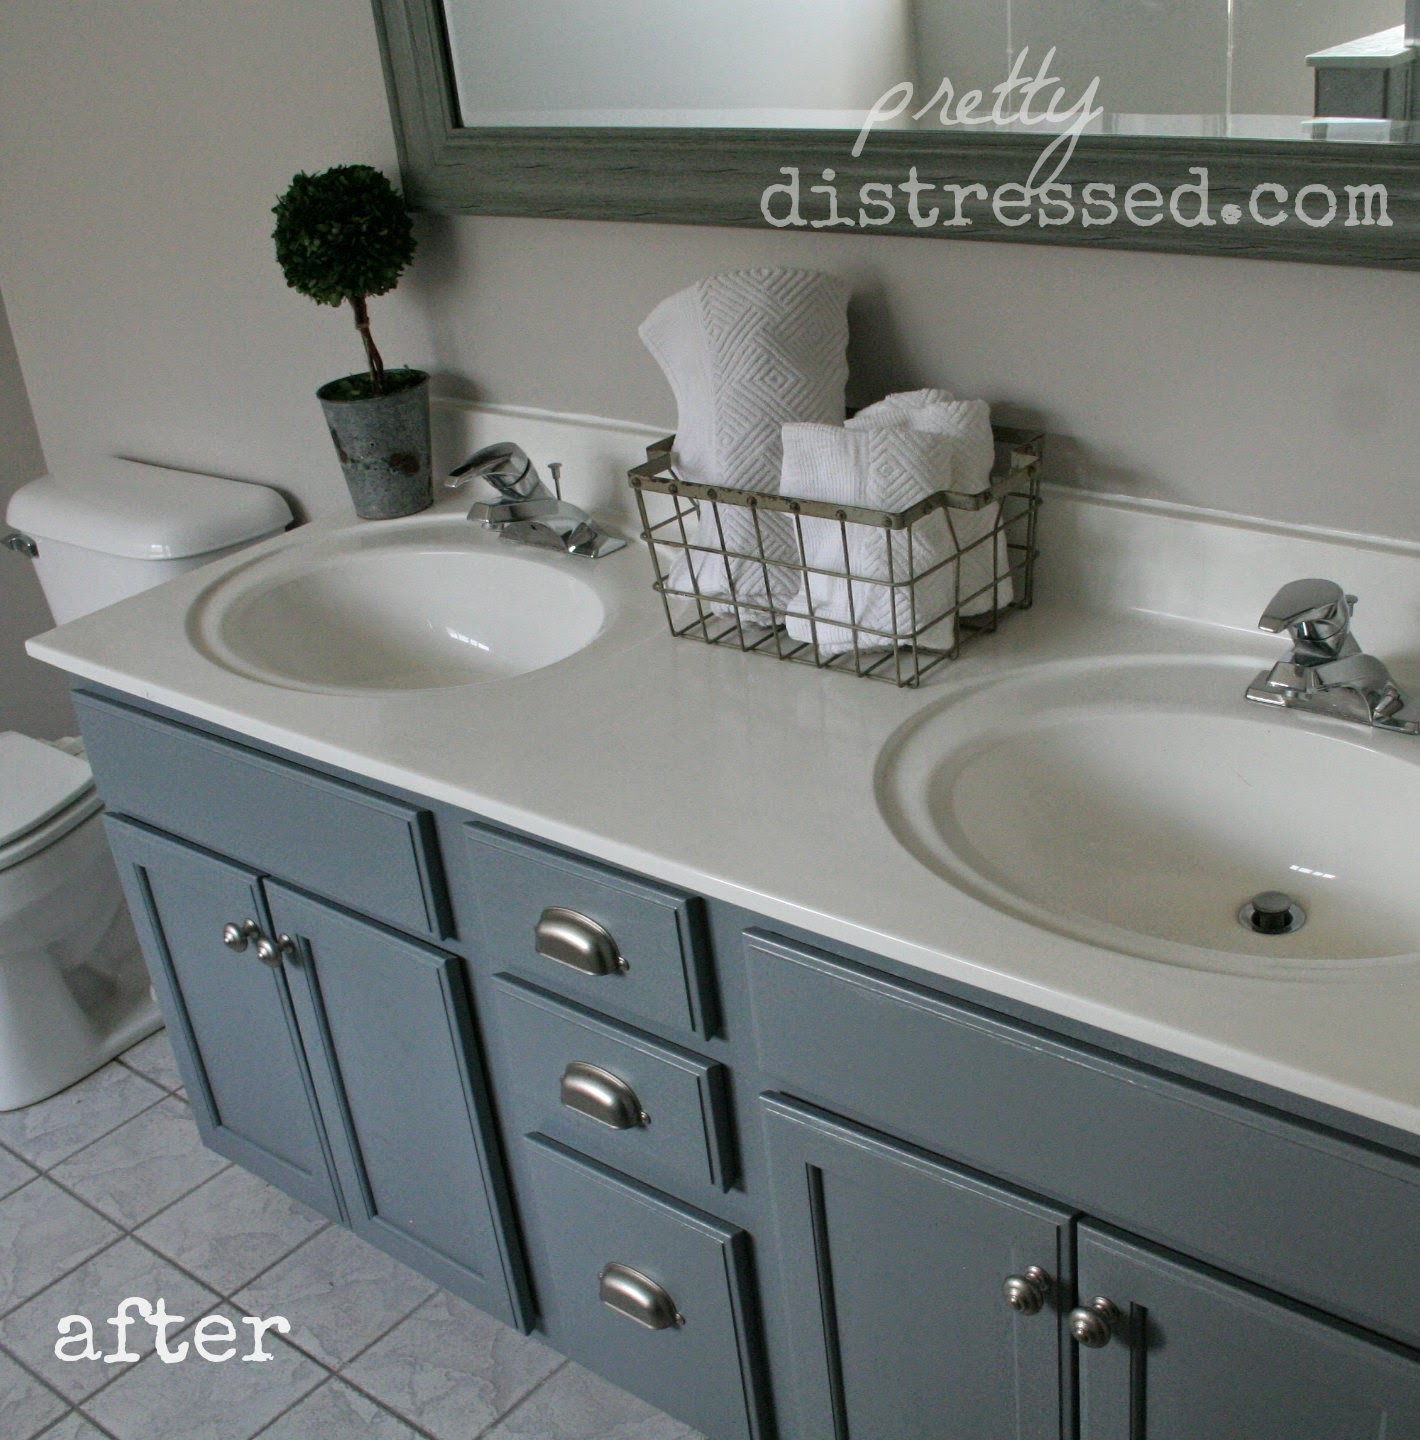 Painted Bathroom Vanity Pretty Distressed Bathroom Vanity Makeover With Latex Paint